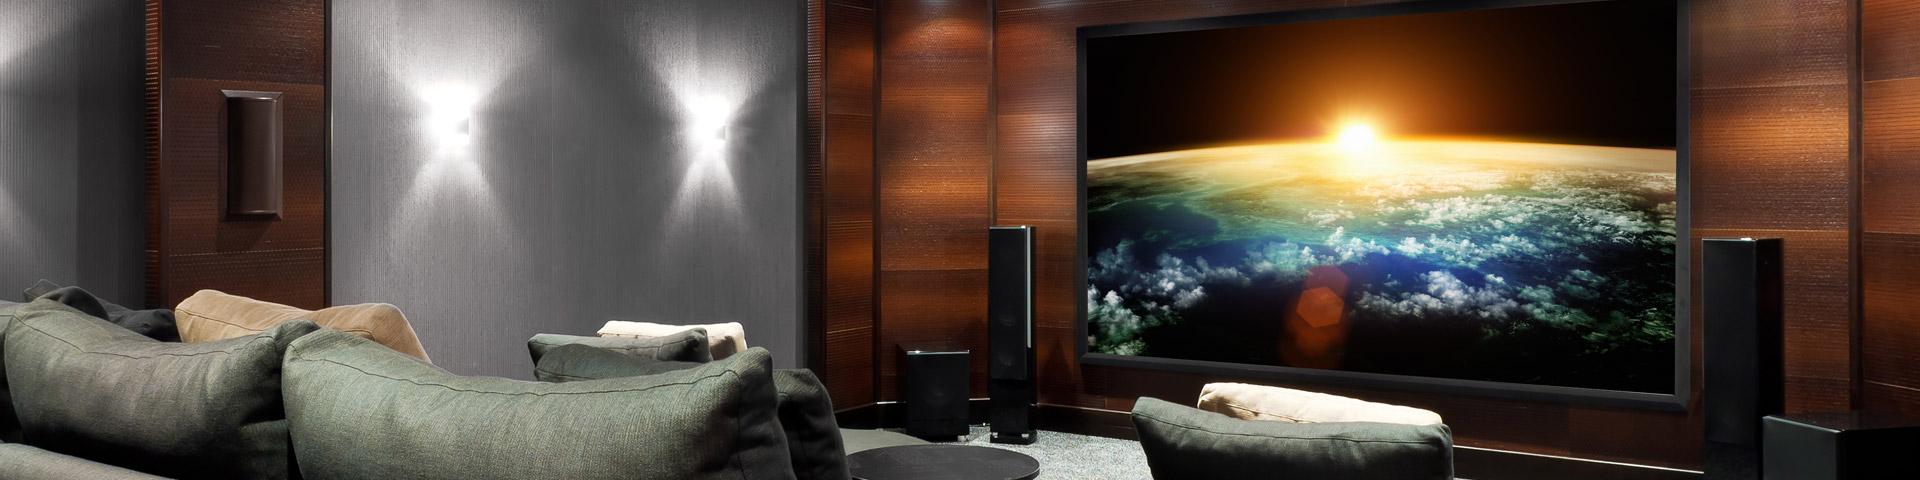 Noble Audio Video Home Theater Solutions